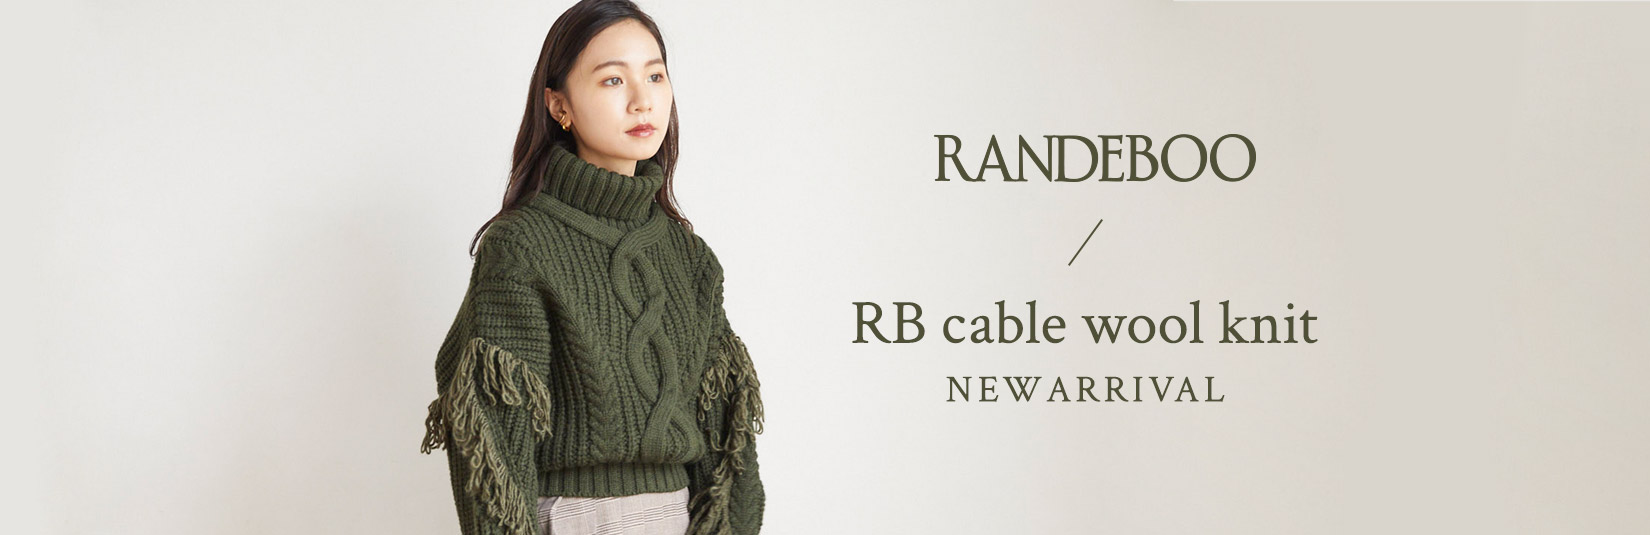 RB cable wool knit New Arrival